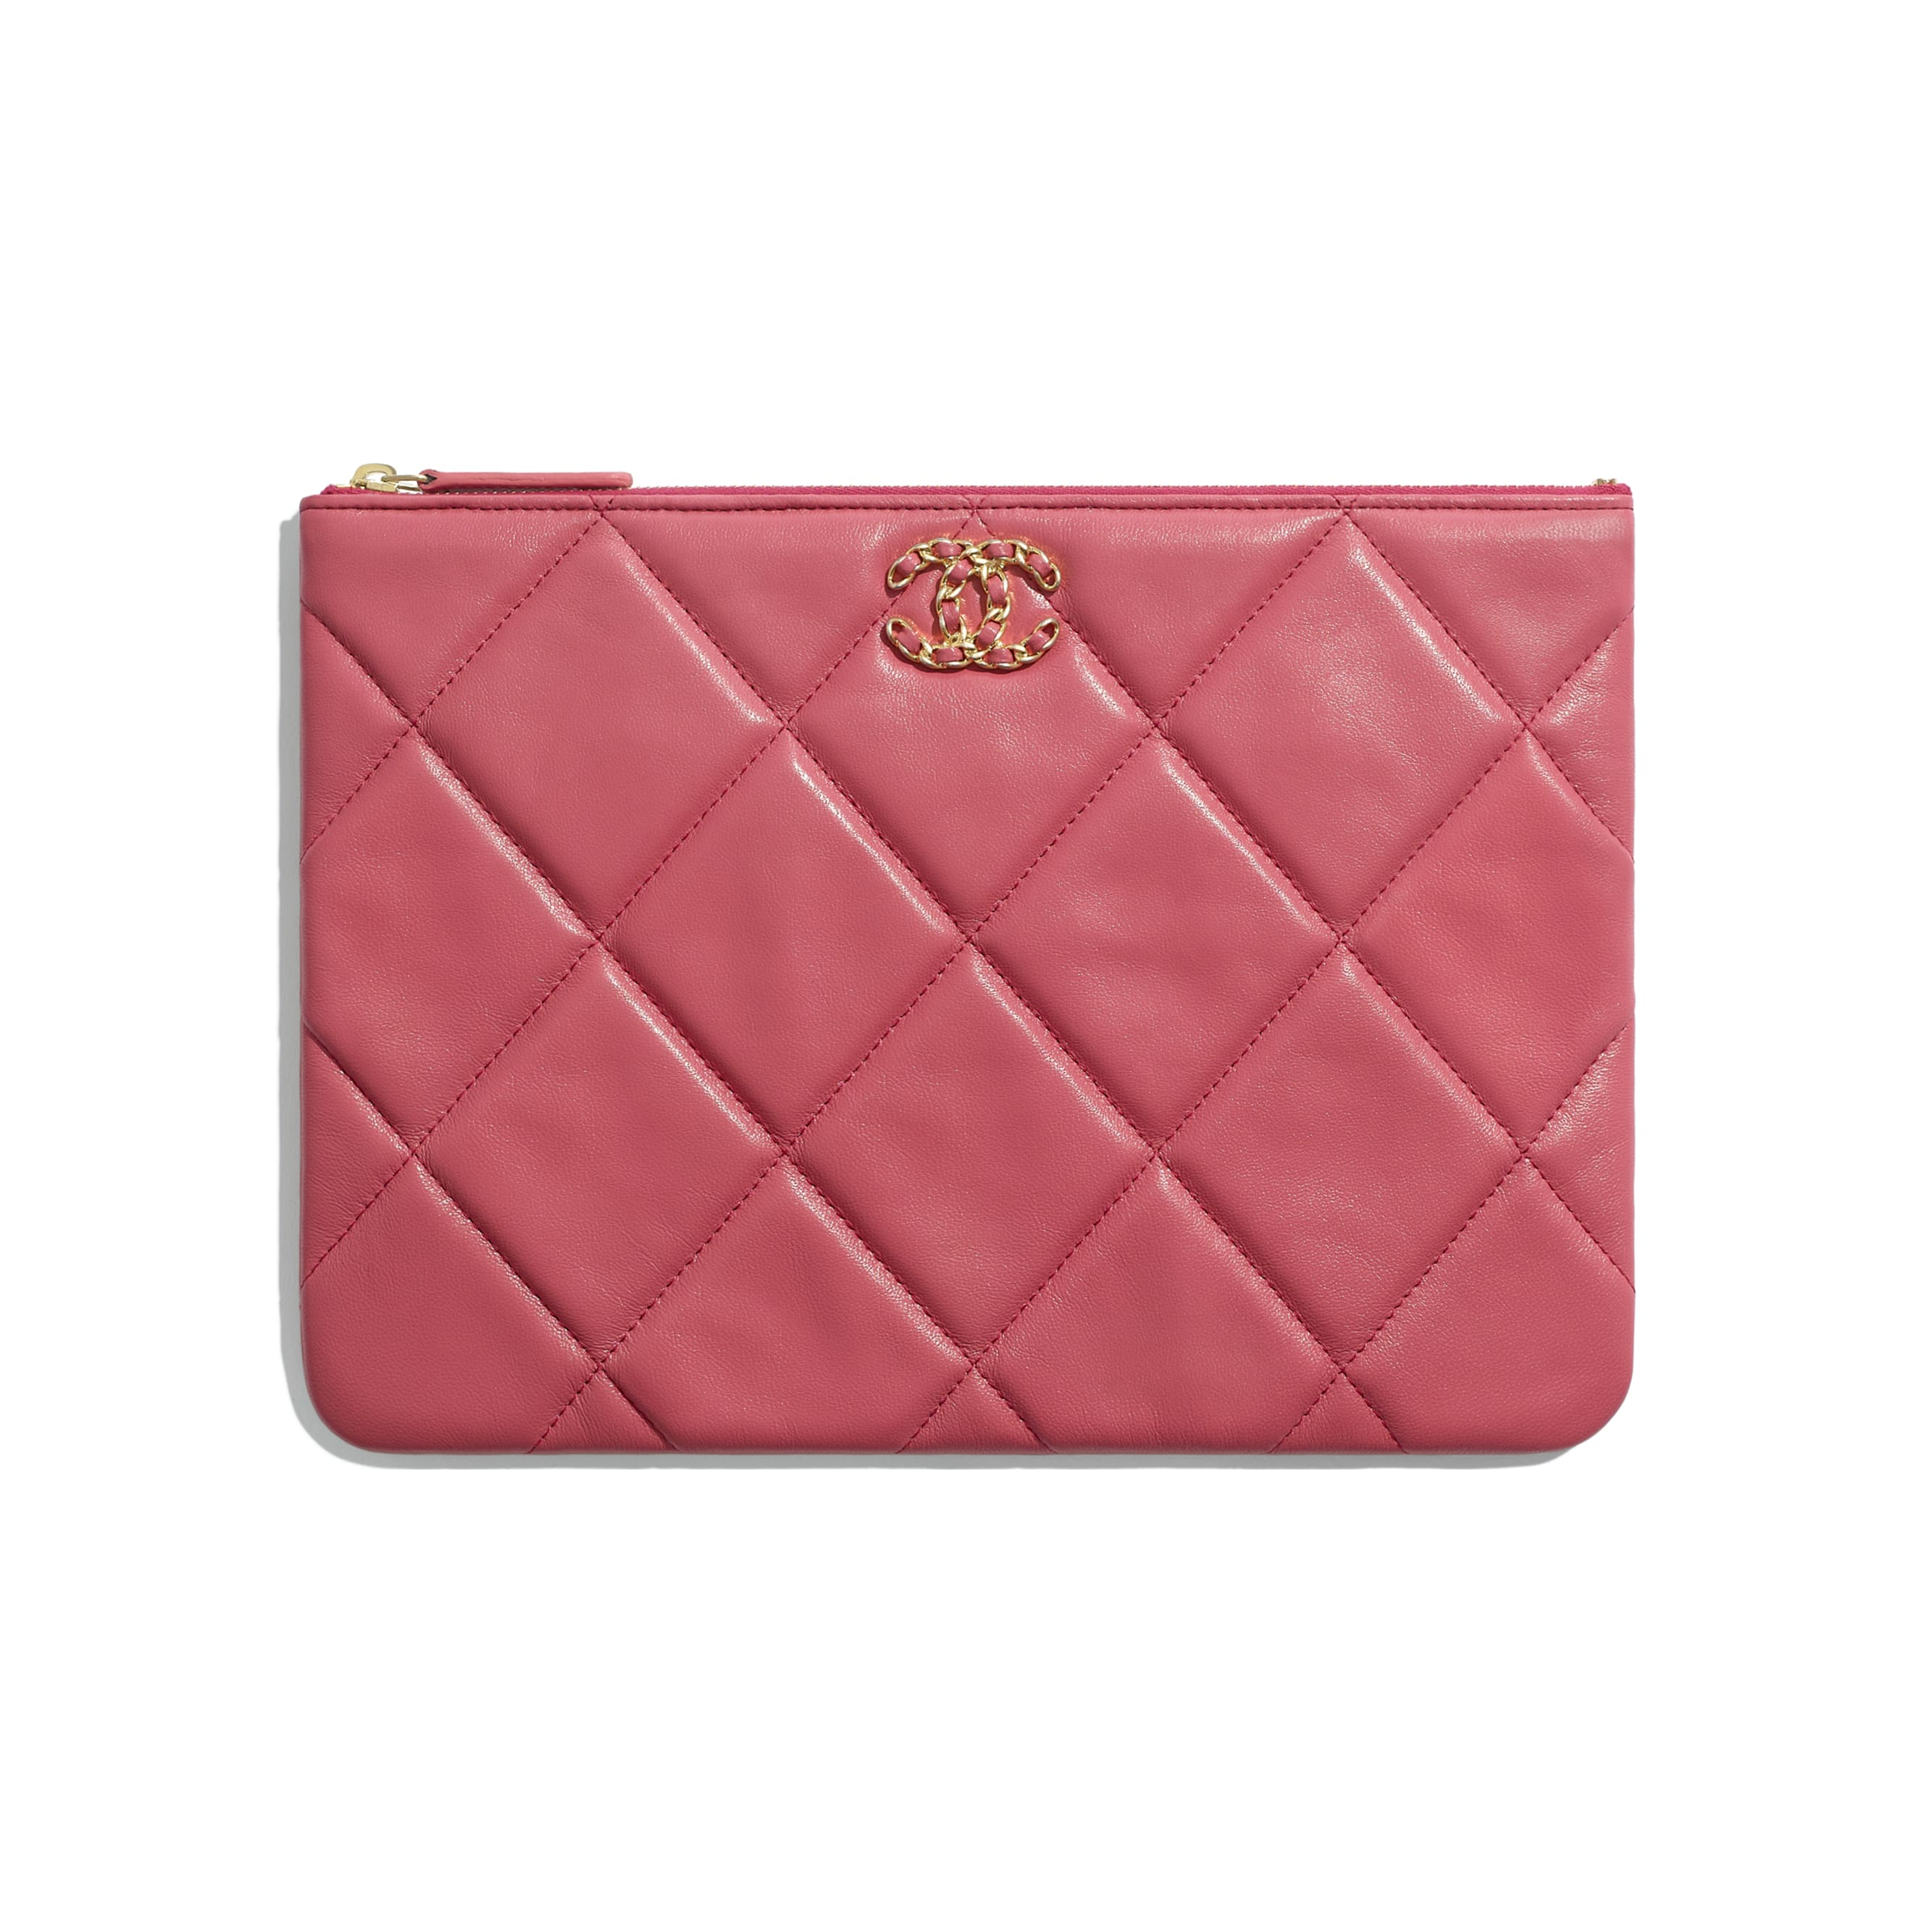 CHANEL 19 Pouch - Pink - Lambskin, Gold-Tone, Silver-Tone & Ruthenium-Finish Metal - Default view - see standard sized version